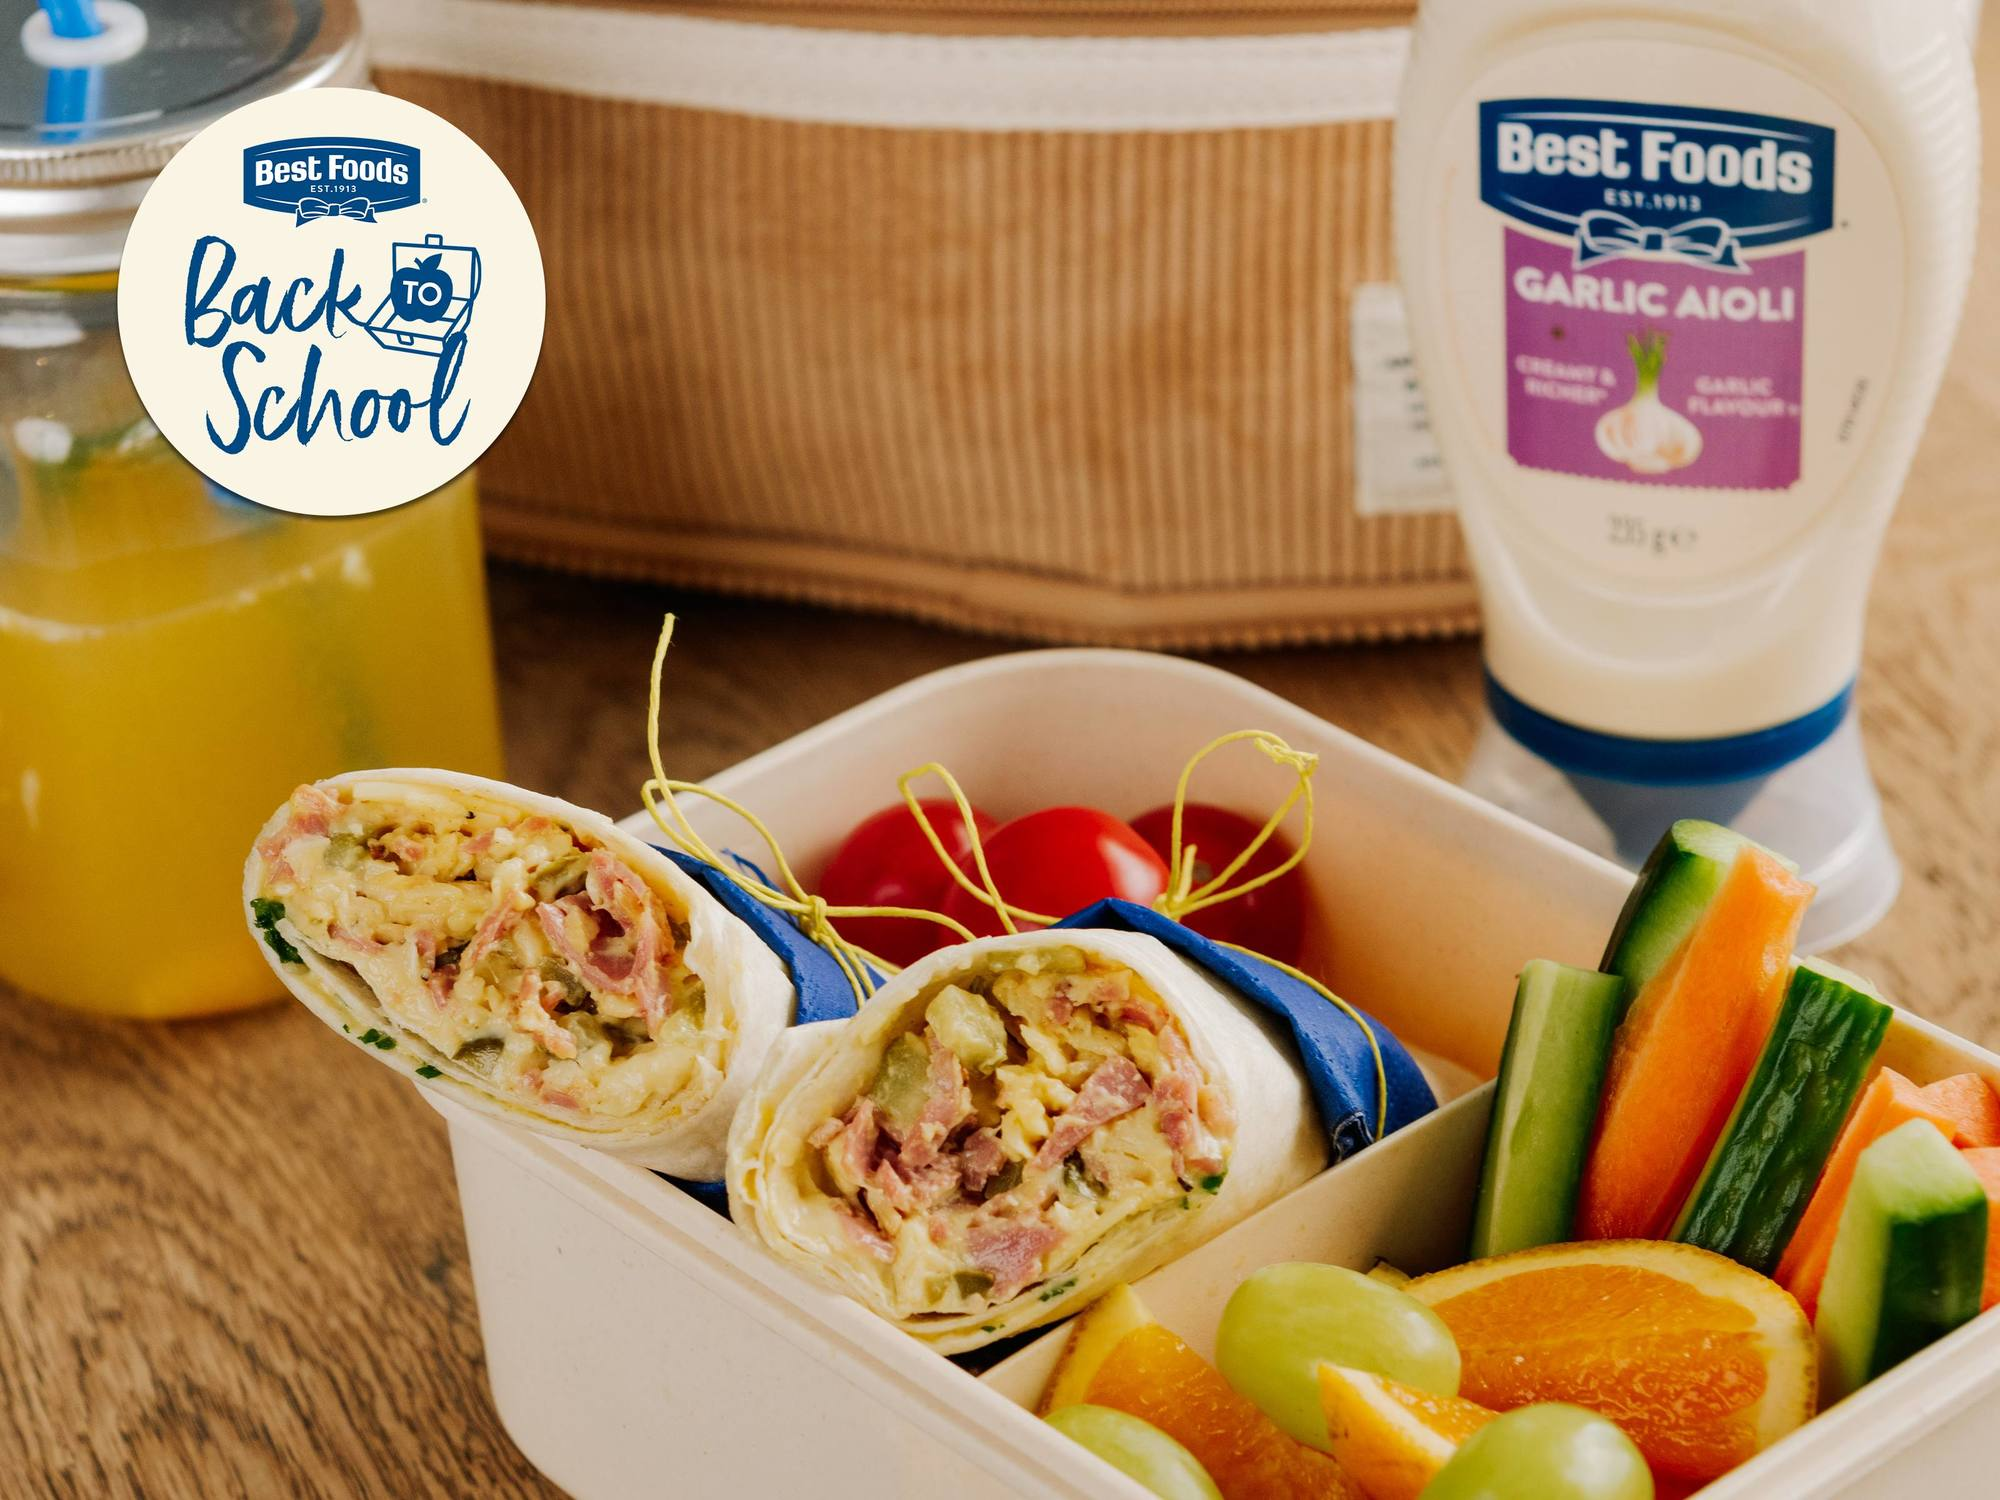 Corned Beef, Smoked Cheese & Pickles Best Foods Garlic Aioli Wrap | Hellmann's NZ